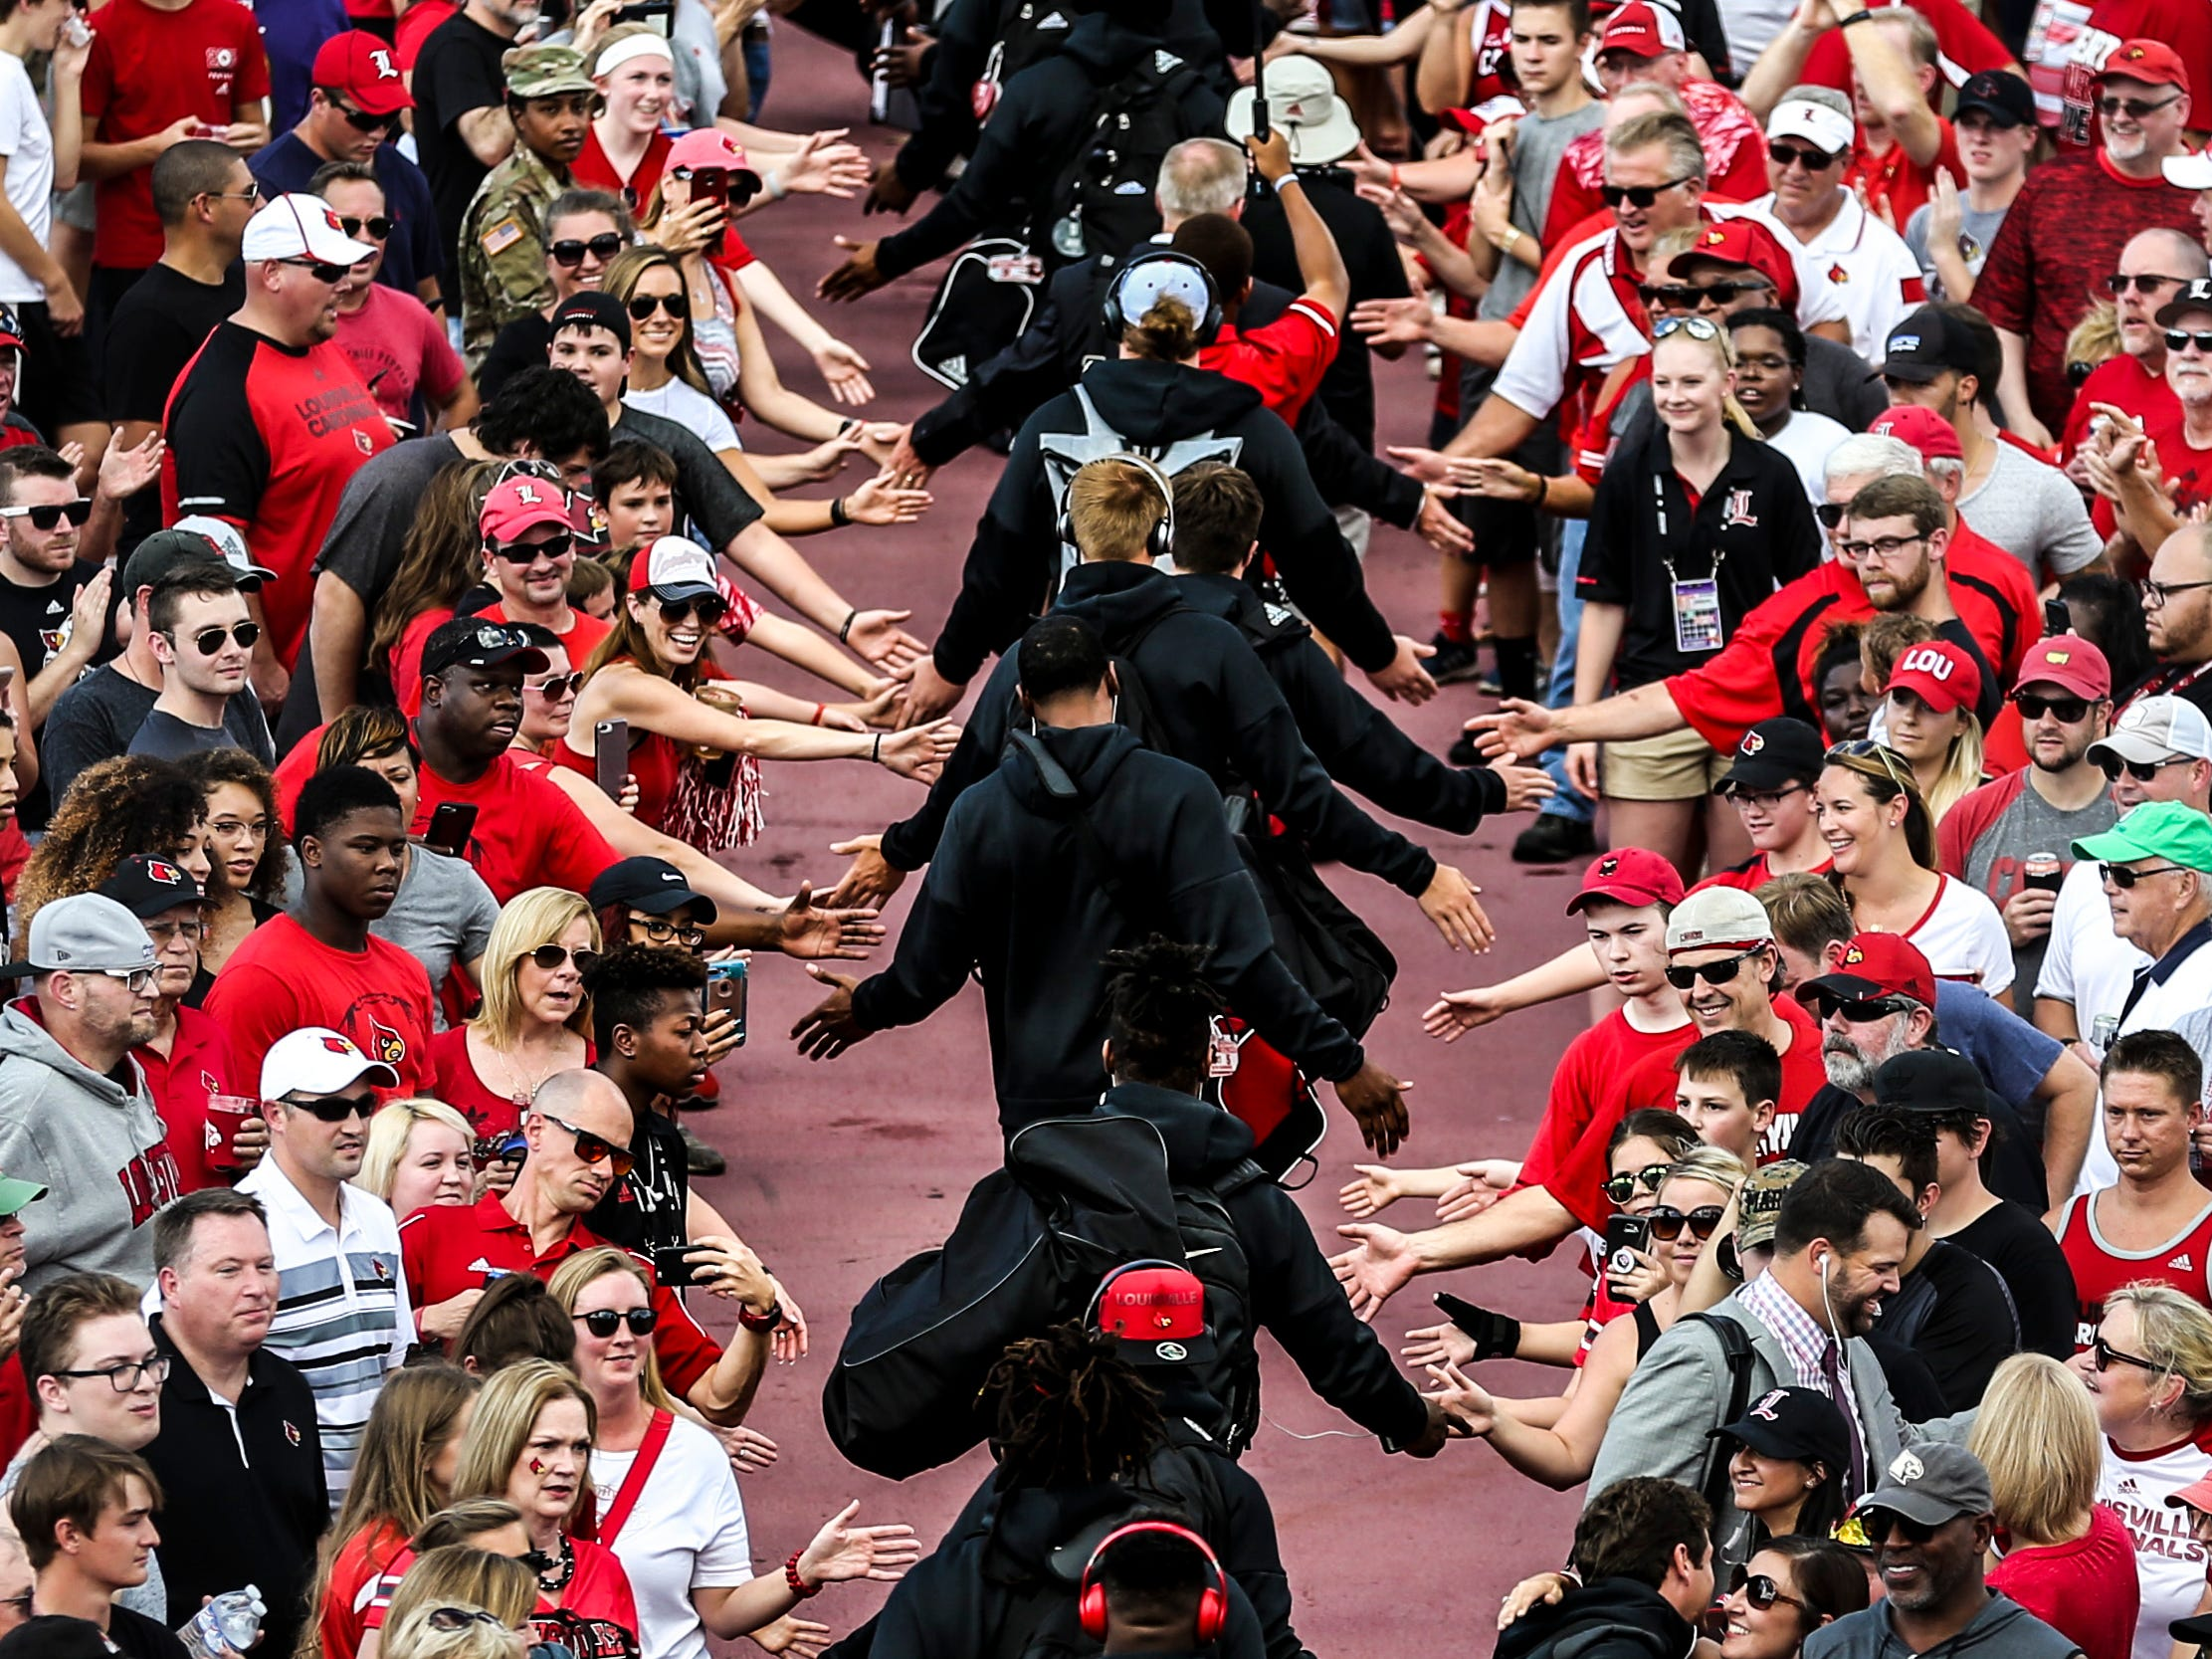 The Louisville football team greets fans as they walk towards Cardinal Stadium before the game against Western Kentucky Saturday, Sept. 15, 2018.